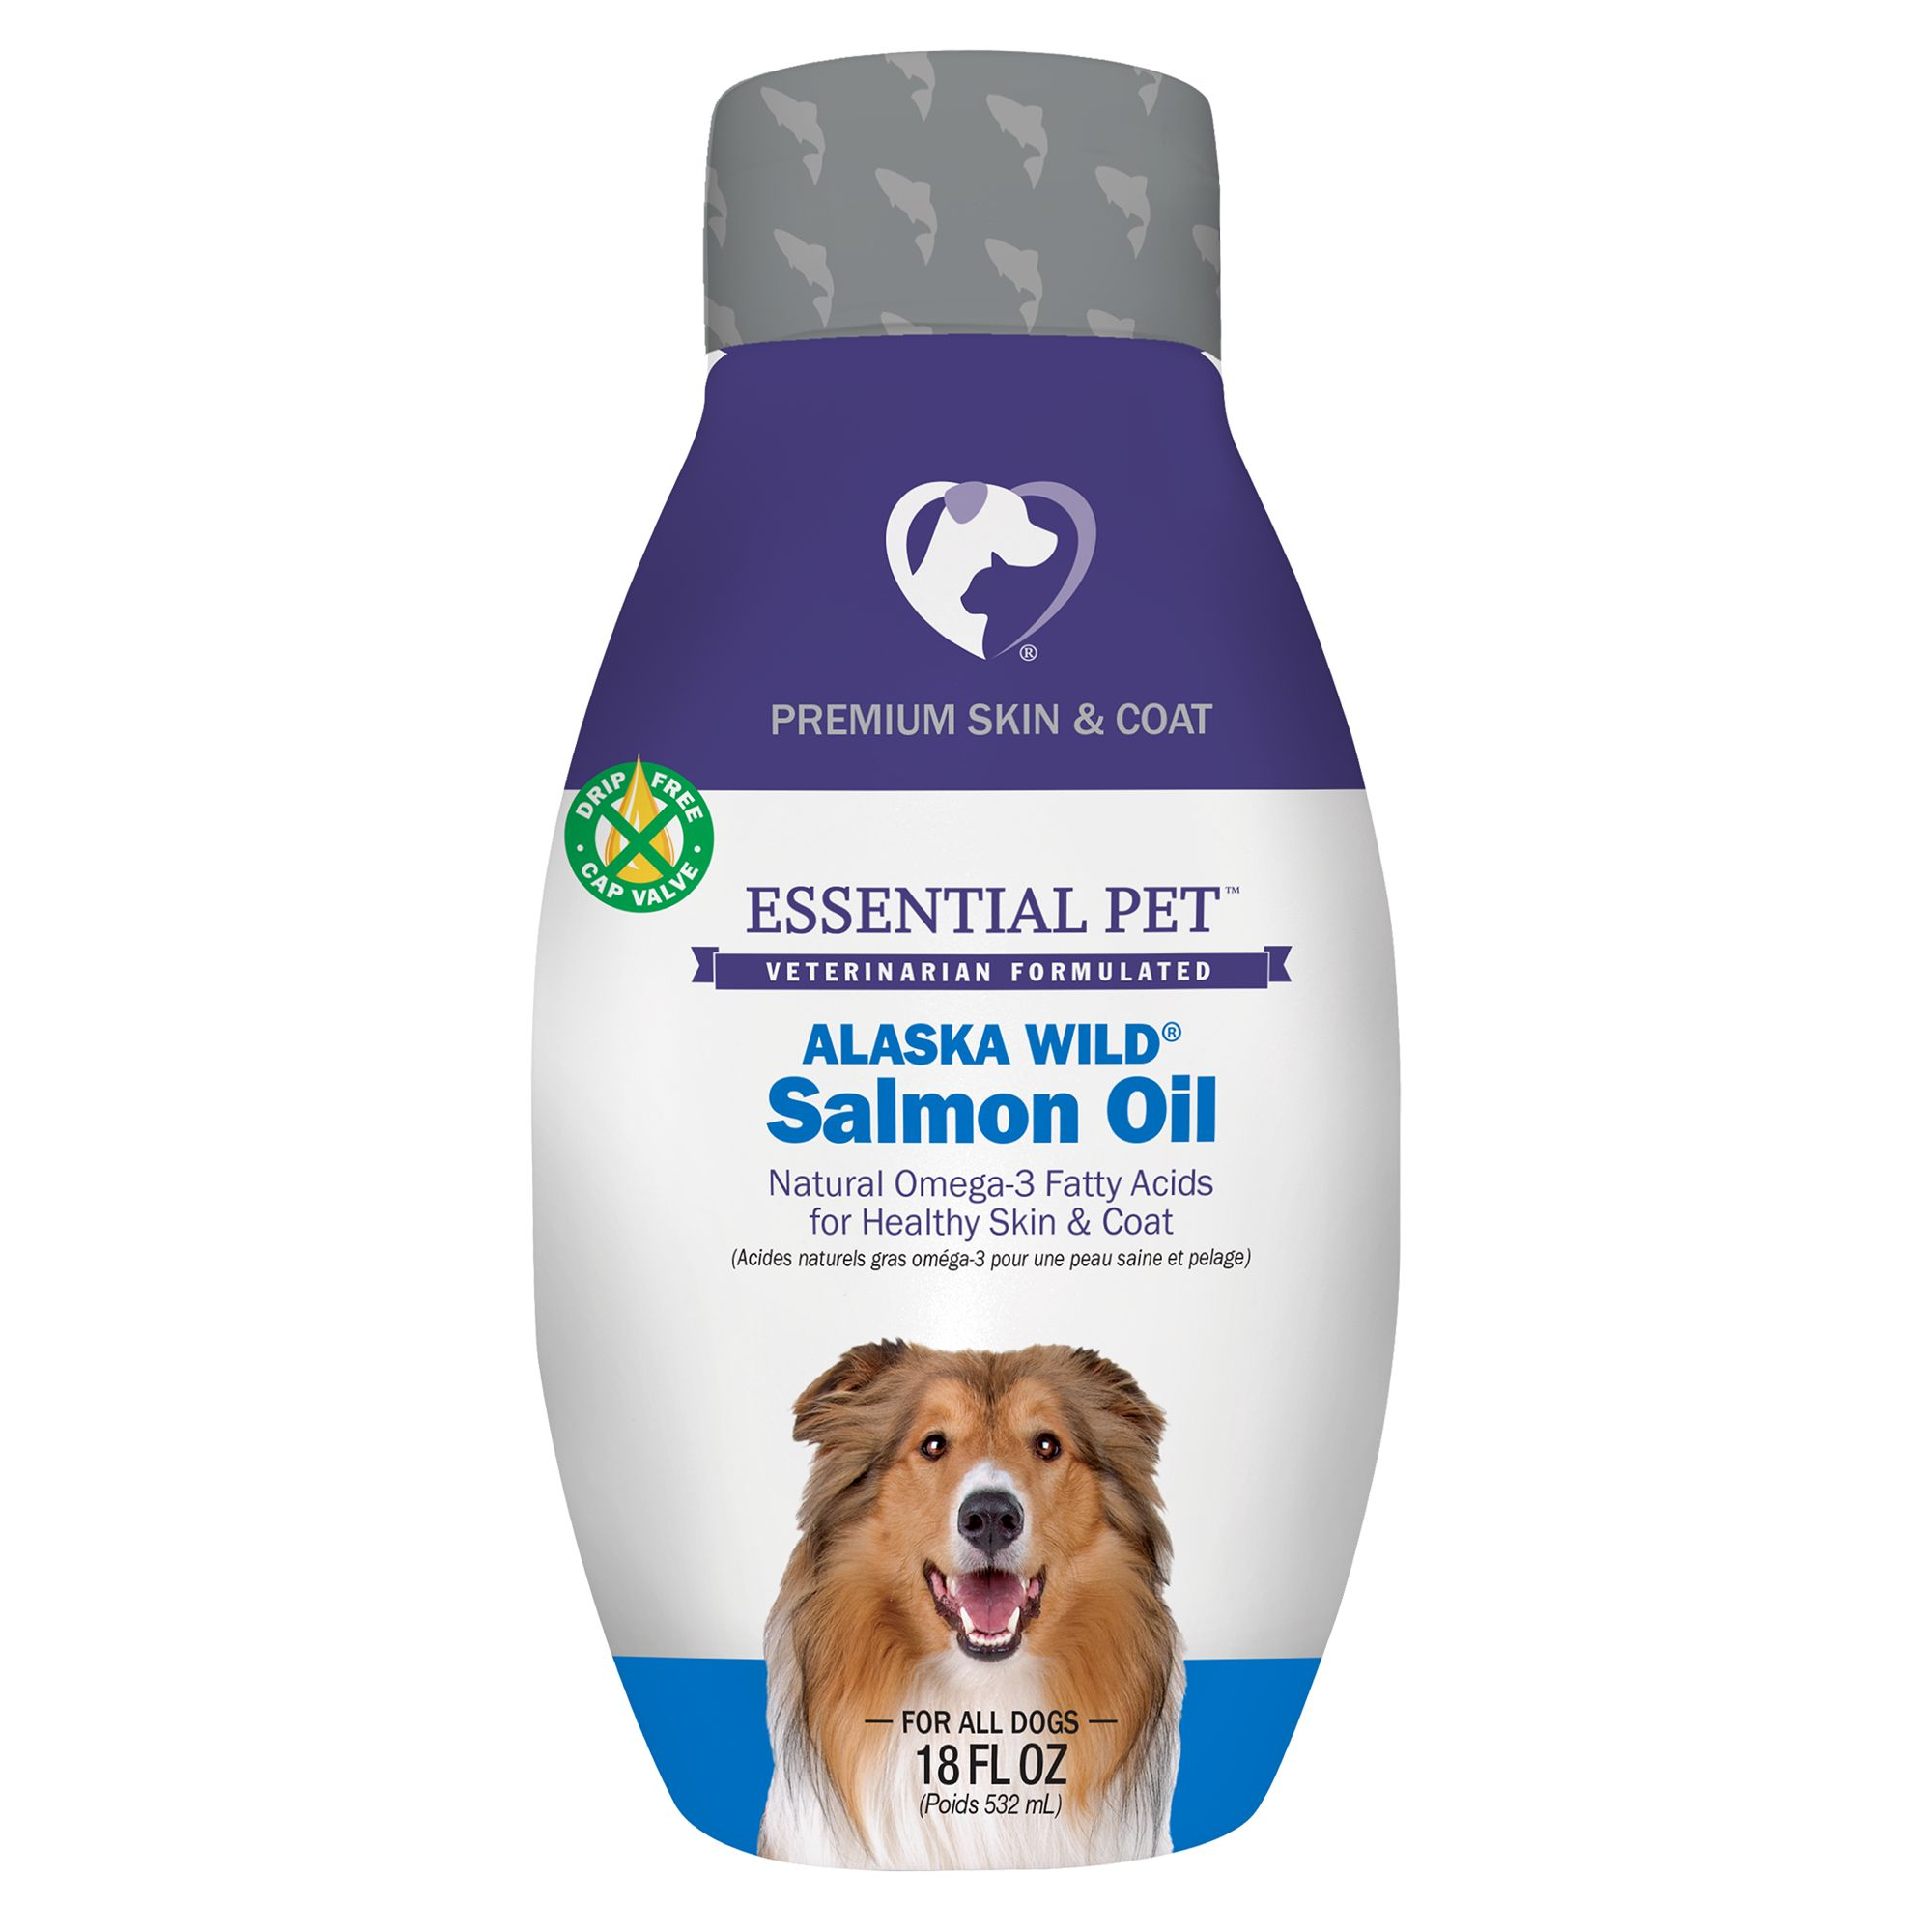 21st Century Skin and Coat Alaska Salmon Oil size: 18 Fl Oz